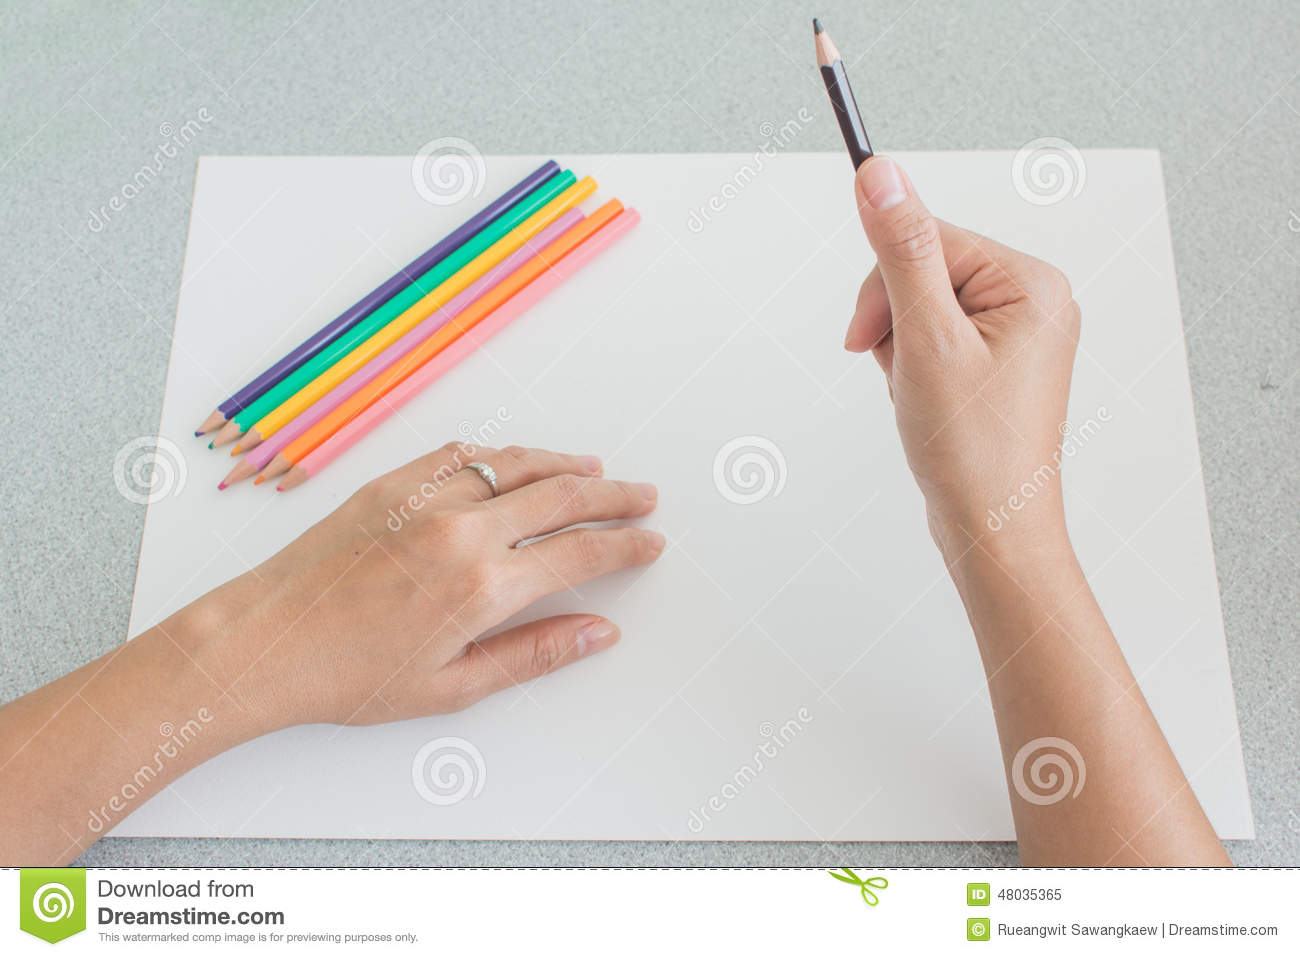 Artist preparing to sketch with colored pencil crayons close up high angle view of his hands holding a pencil with the rest of the set lying on a large